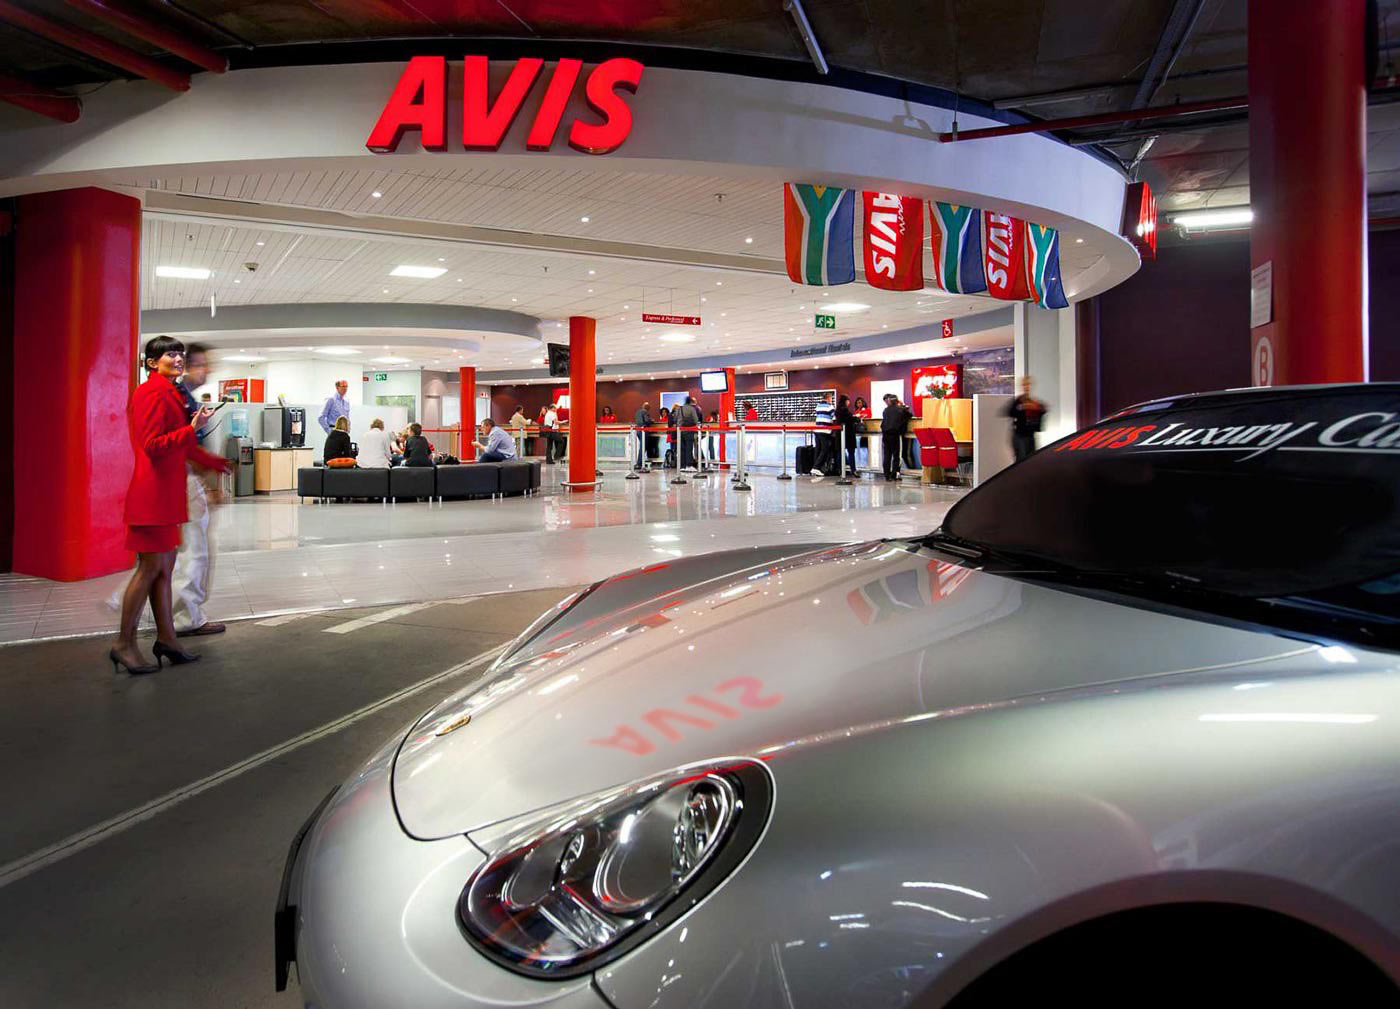 Avis car rental facility at OR Tambo airport - corporate and promotional photography collection